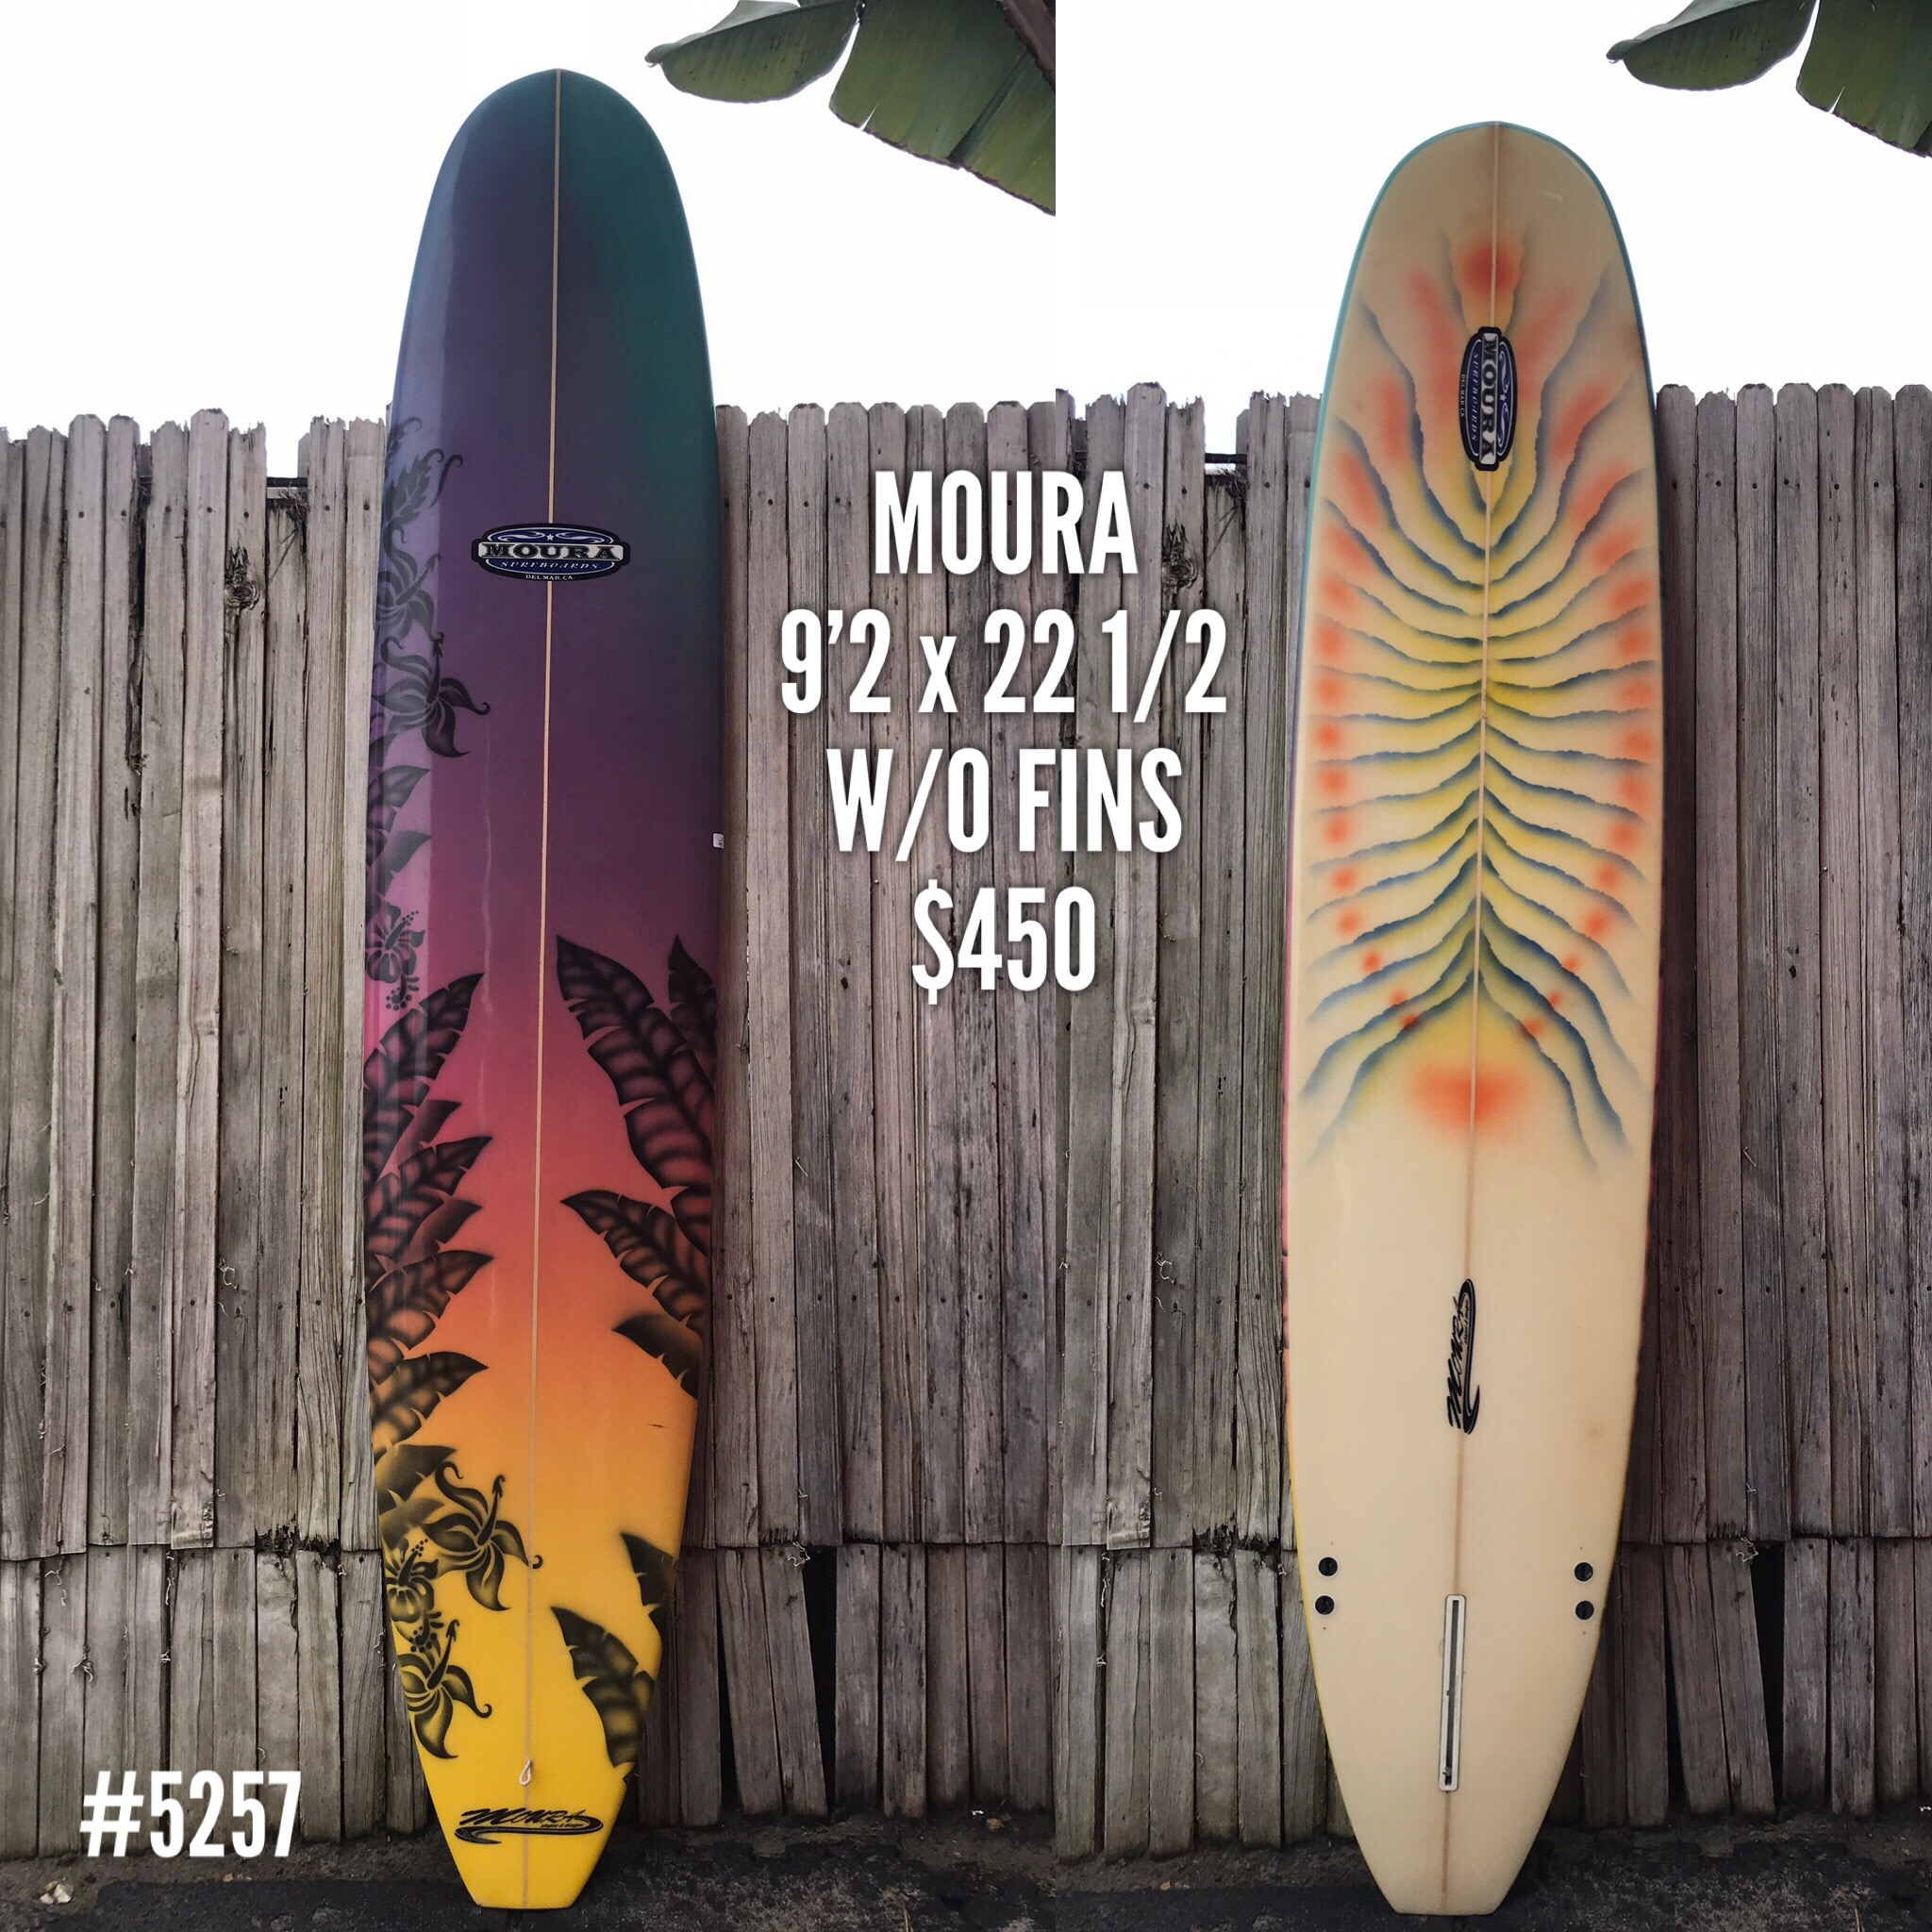 This fun looking 9'2 Moura Longboard is in good condition. Little signs of wear and tear with a small pro ding repair on the tail and a couple little scratches, but watertight and ready to hit the waves. A nice refined shape with more of a performance feel and a little extra rocker will have you ready for the next winter swell. Selling w/o fins, just $450.